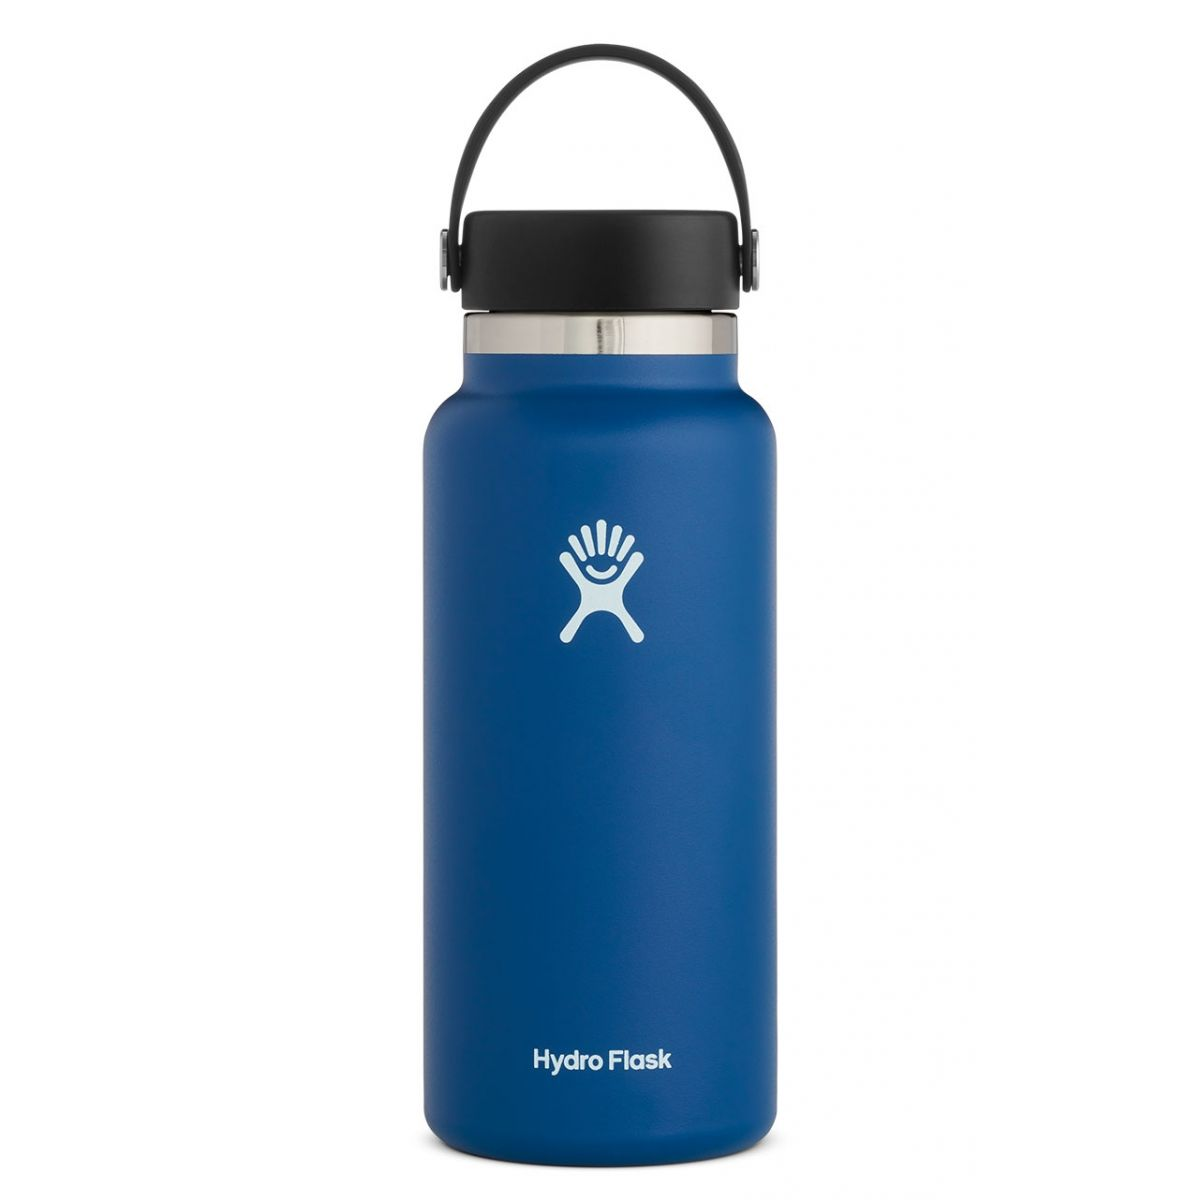 Where to buy Hydro Flask